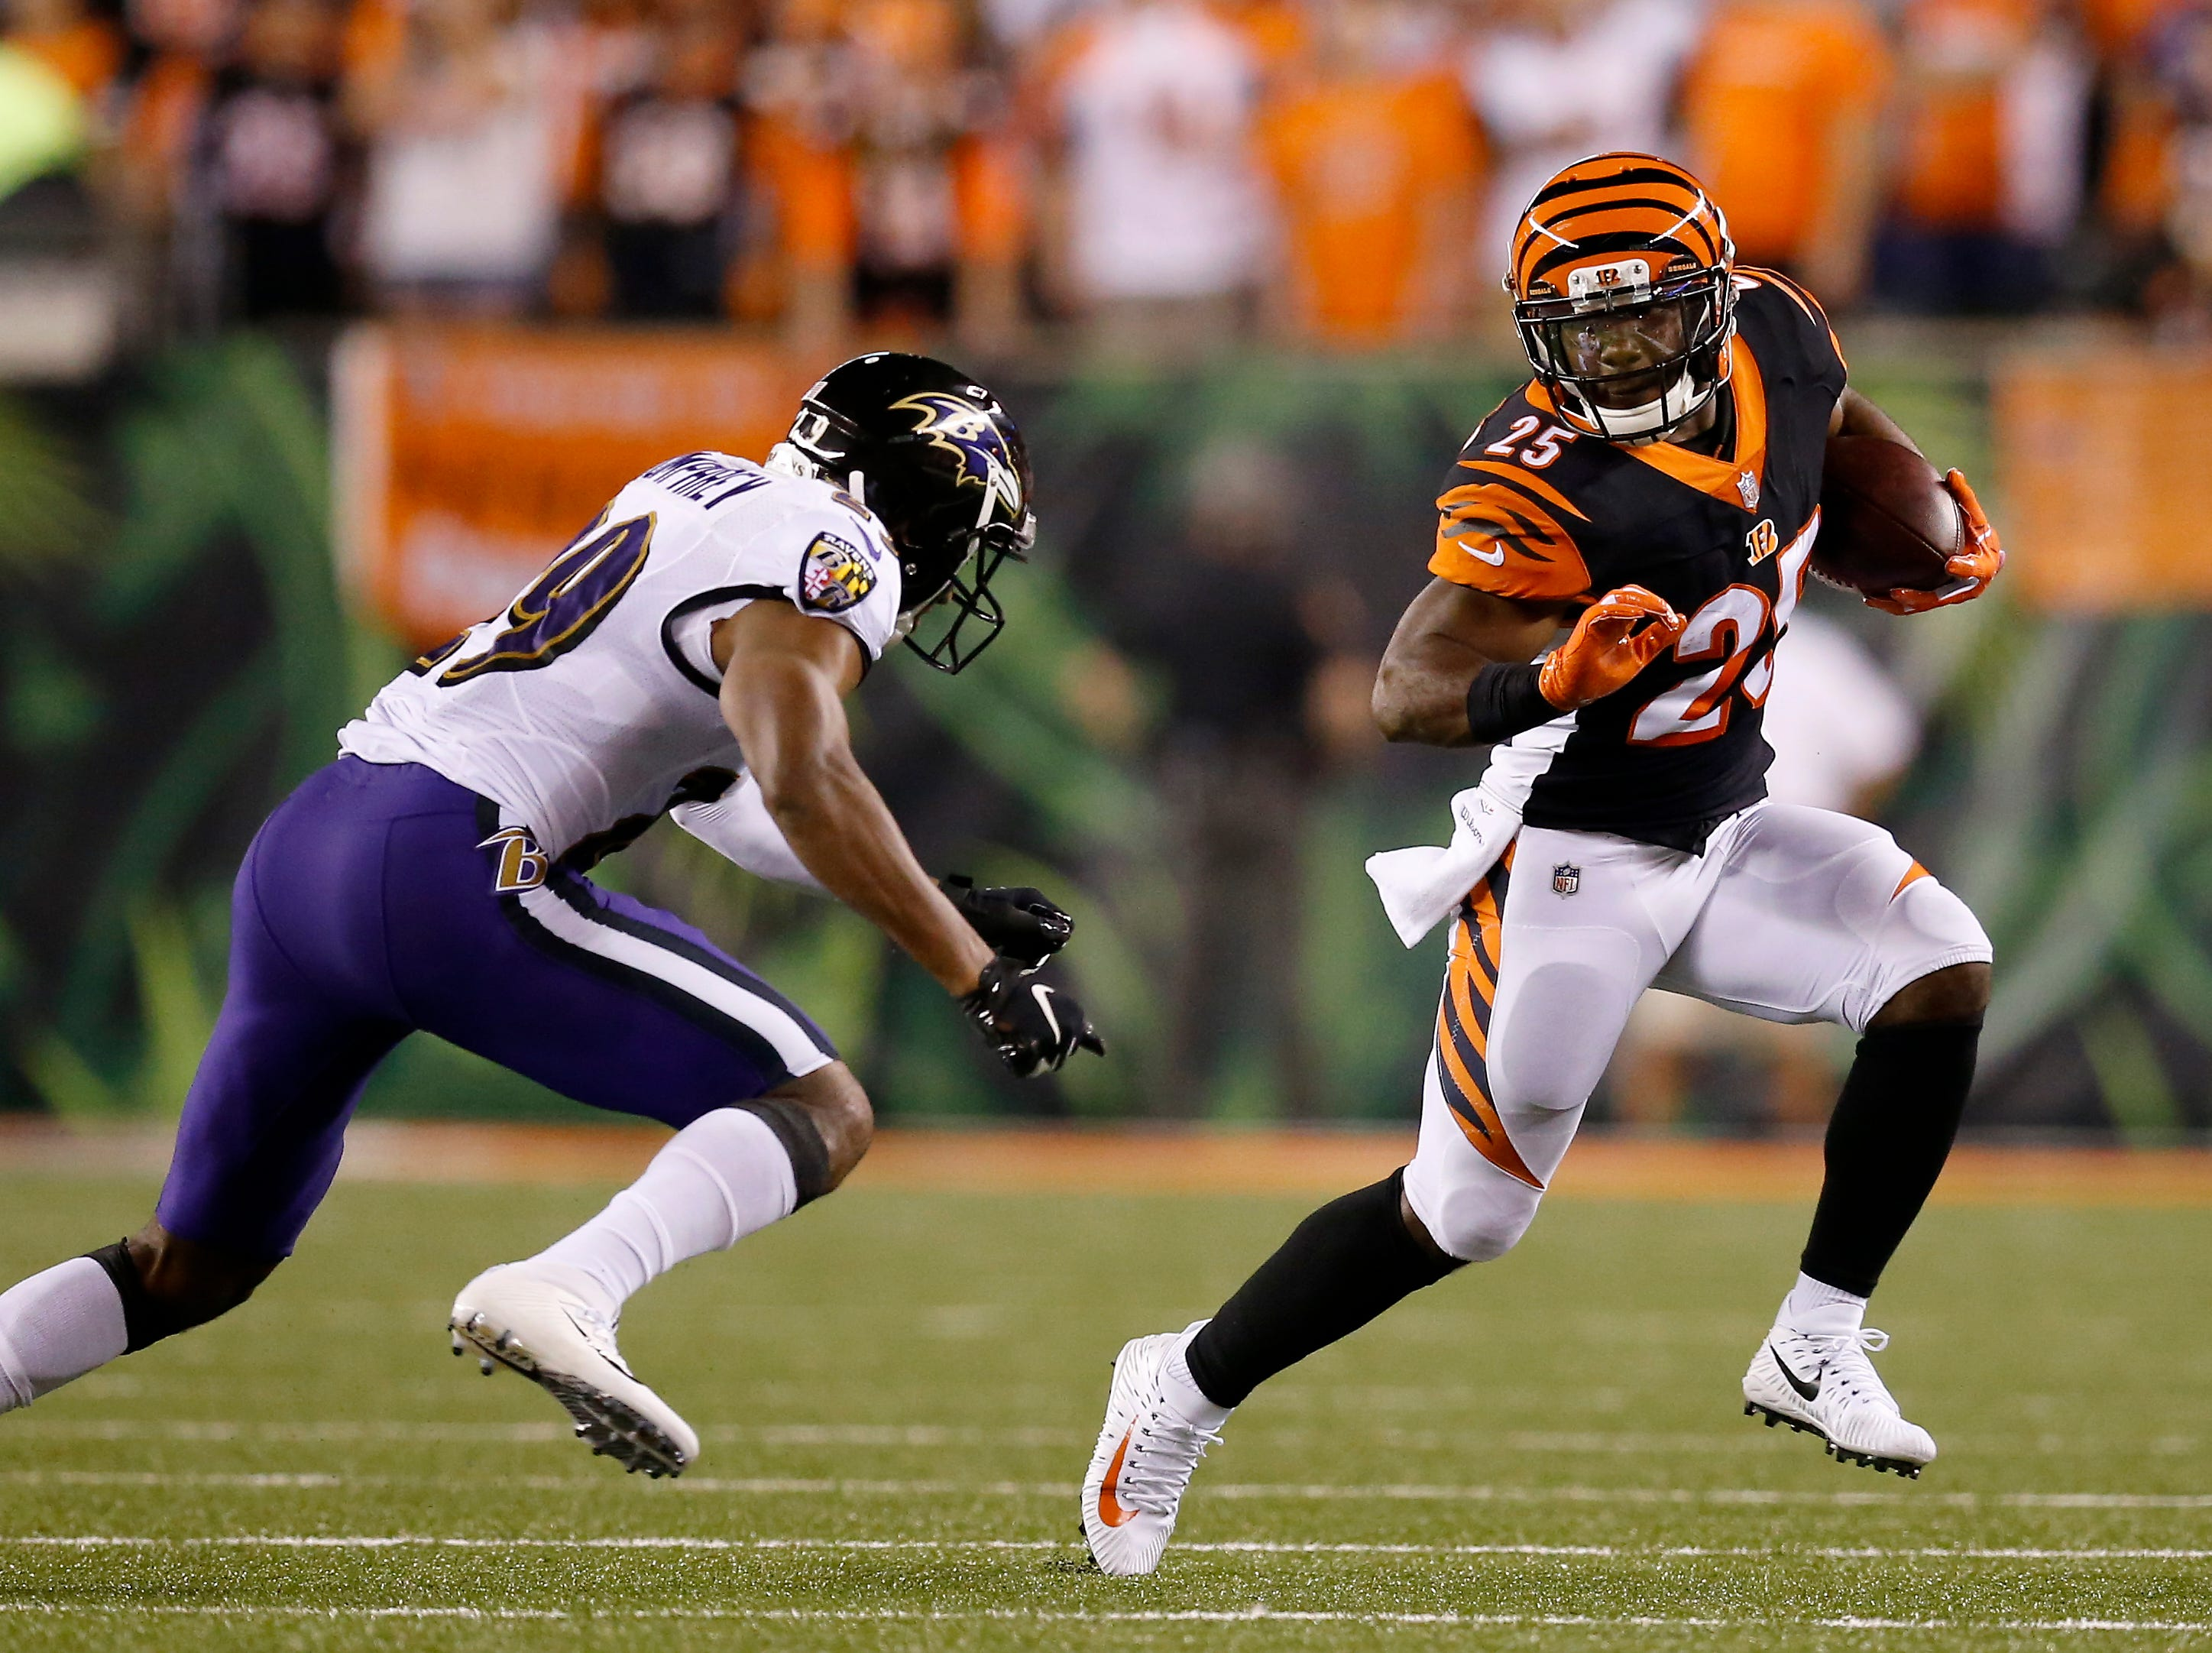 Cincinnati Bengals running back Giovani Bernard (25) runs from a tackle by Baltimore Ravens cornerback Marlon Humphrey (29) in the first quarter of the NFL Week 2 game between the Cincinnati Bengals and the Baltimore Ravens at Paul Brown Stadium in downtown Cincinnati on Thursday, Sept. 13, 2018. The Bengals led 28-14 at halftime.